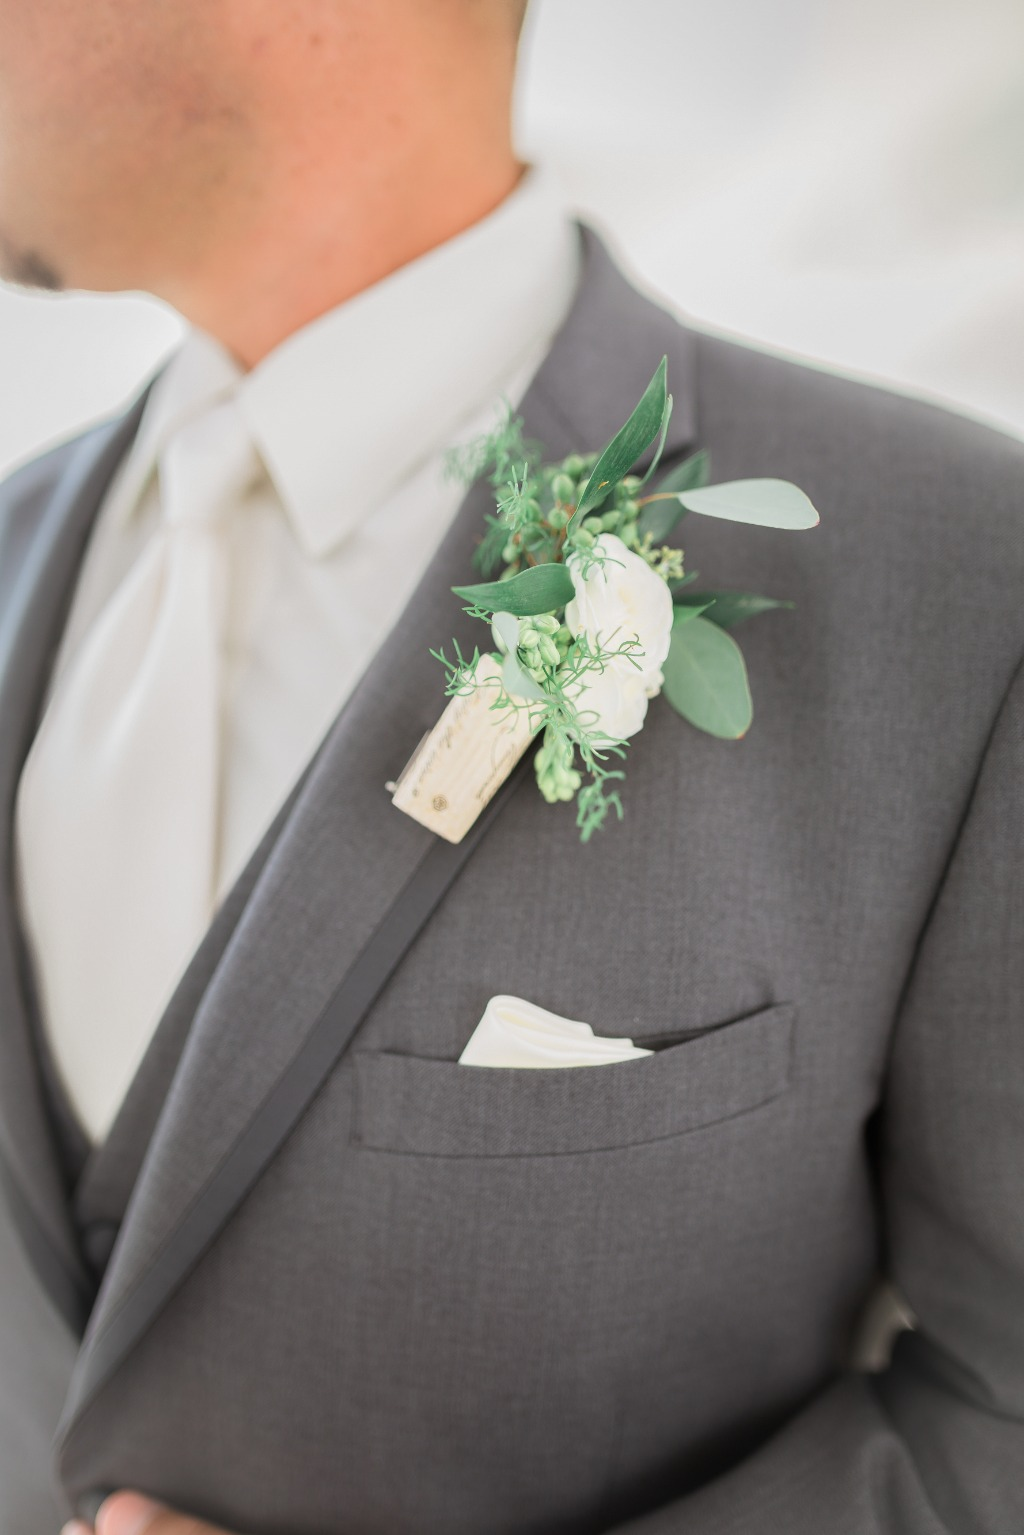 Don't forget about the groom details! Loving this unique boutonnière with a wine cork!